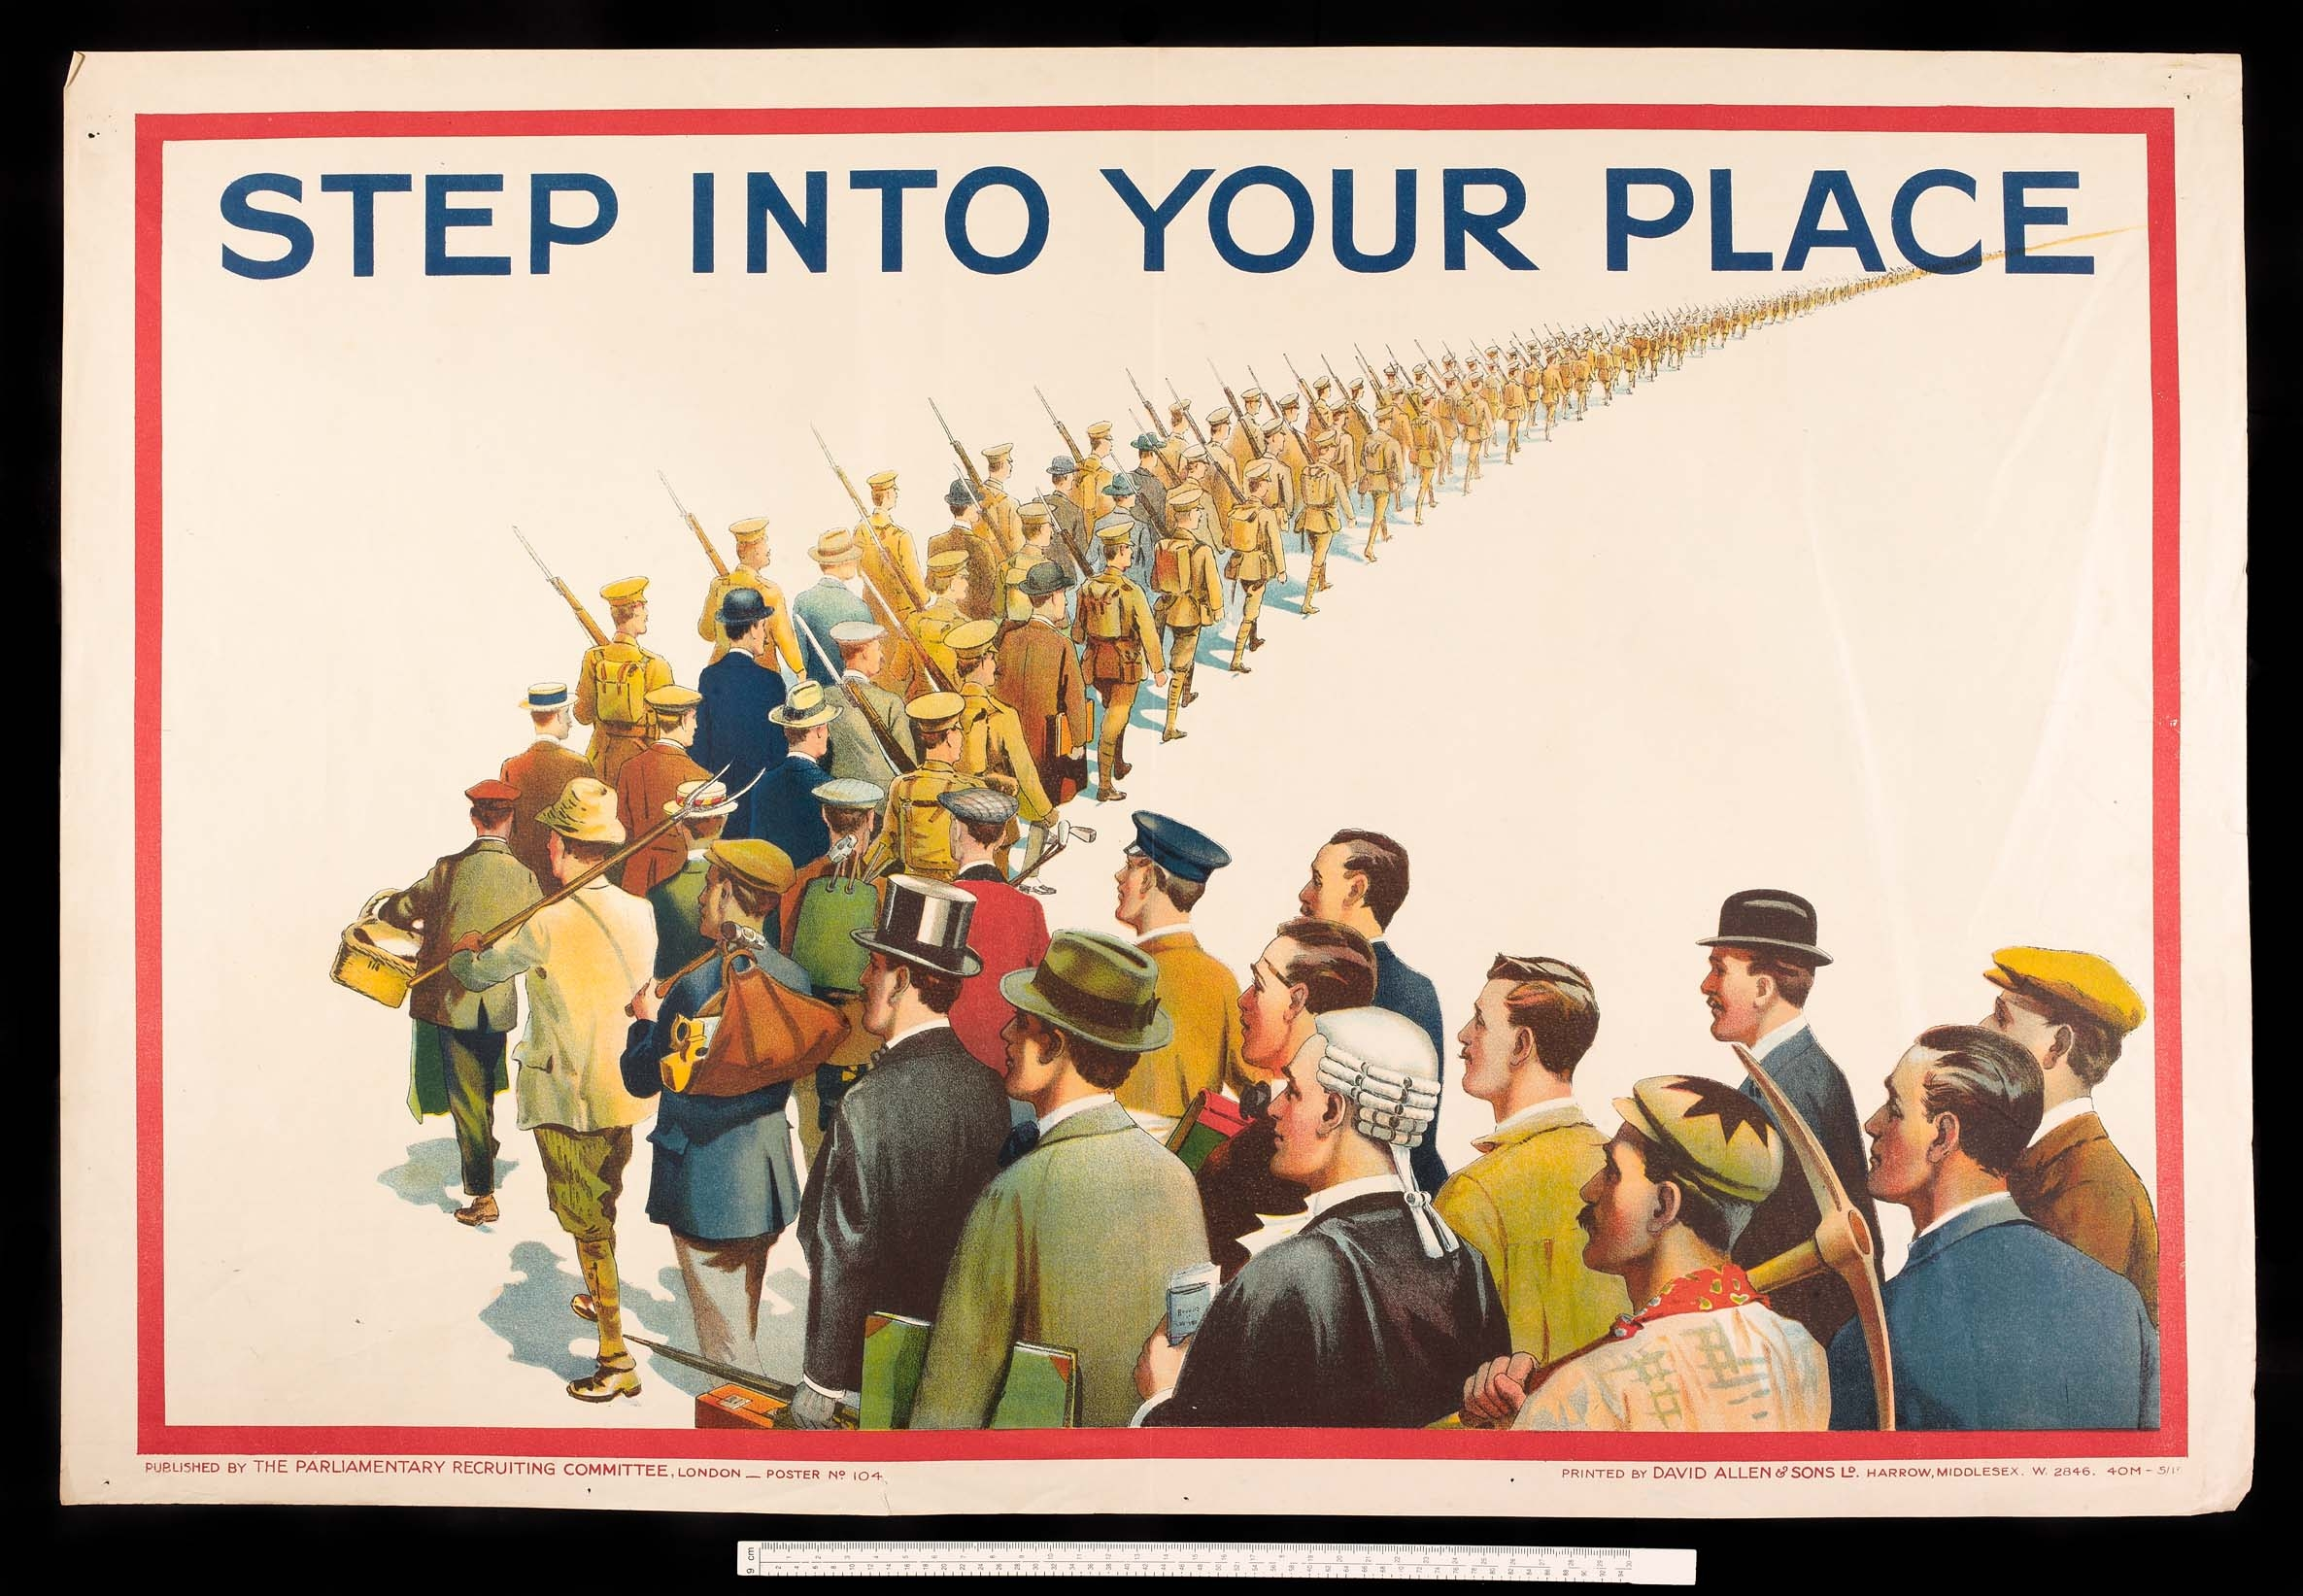 https://firstworldwarhiddenhistory.files.wordpress.com/2014/07/step-into-your-place-poster.jpg